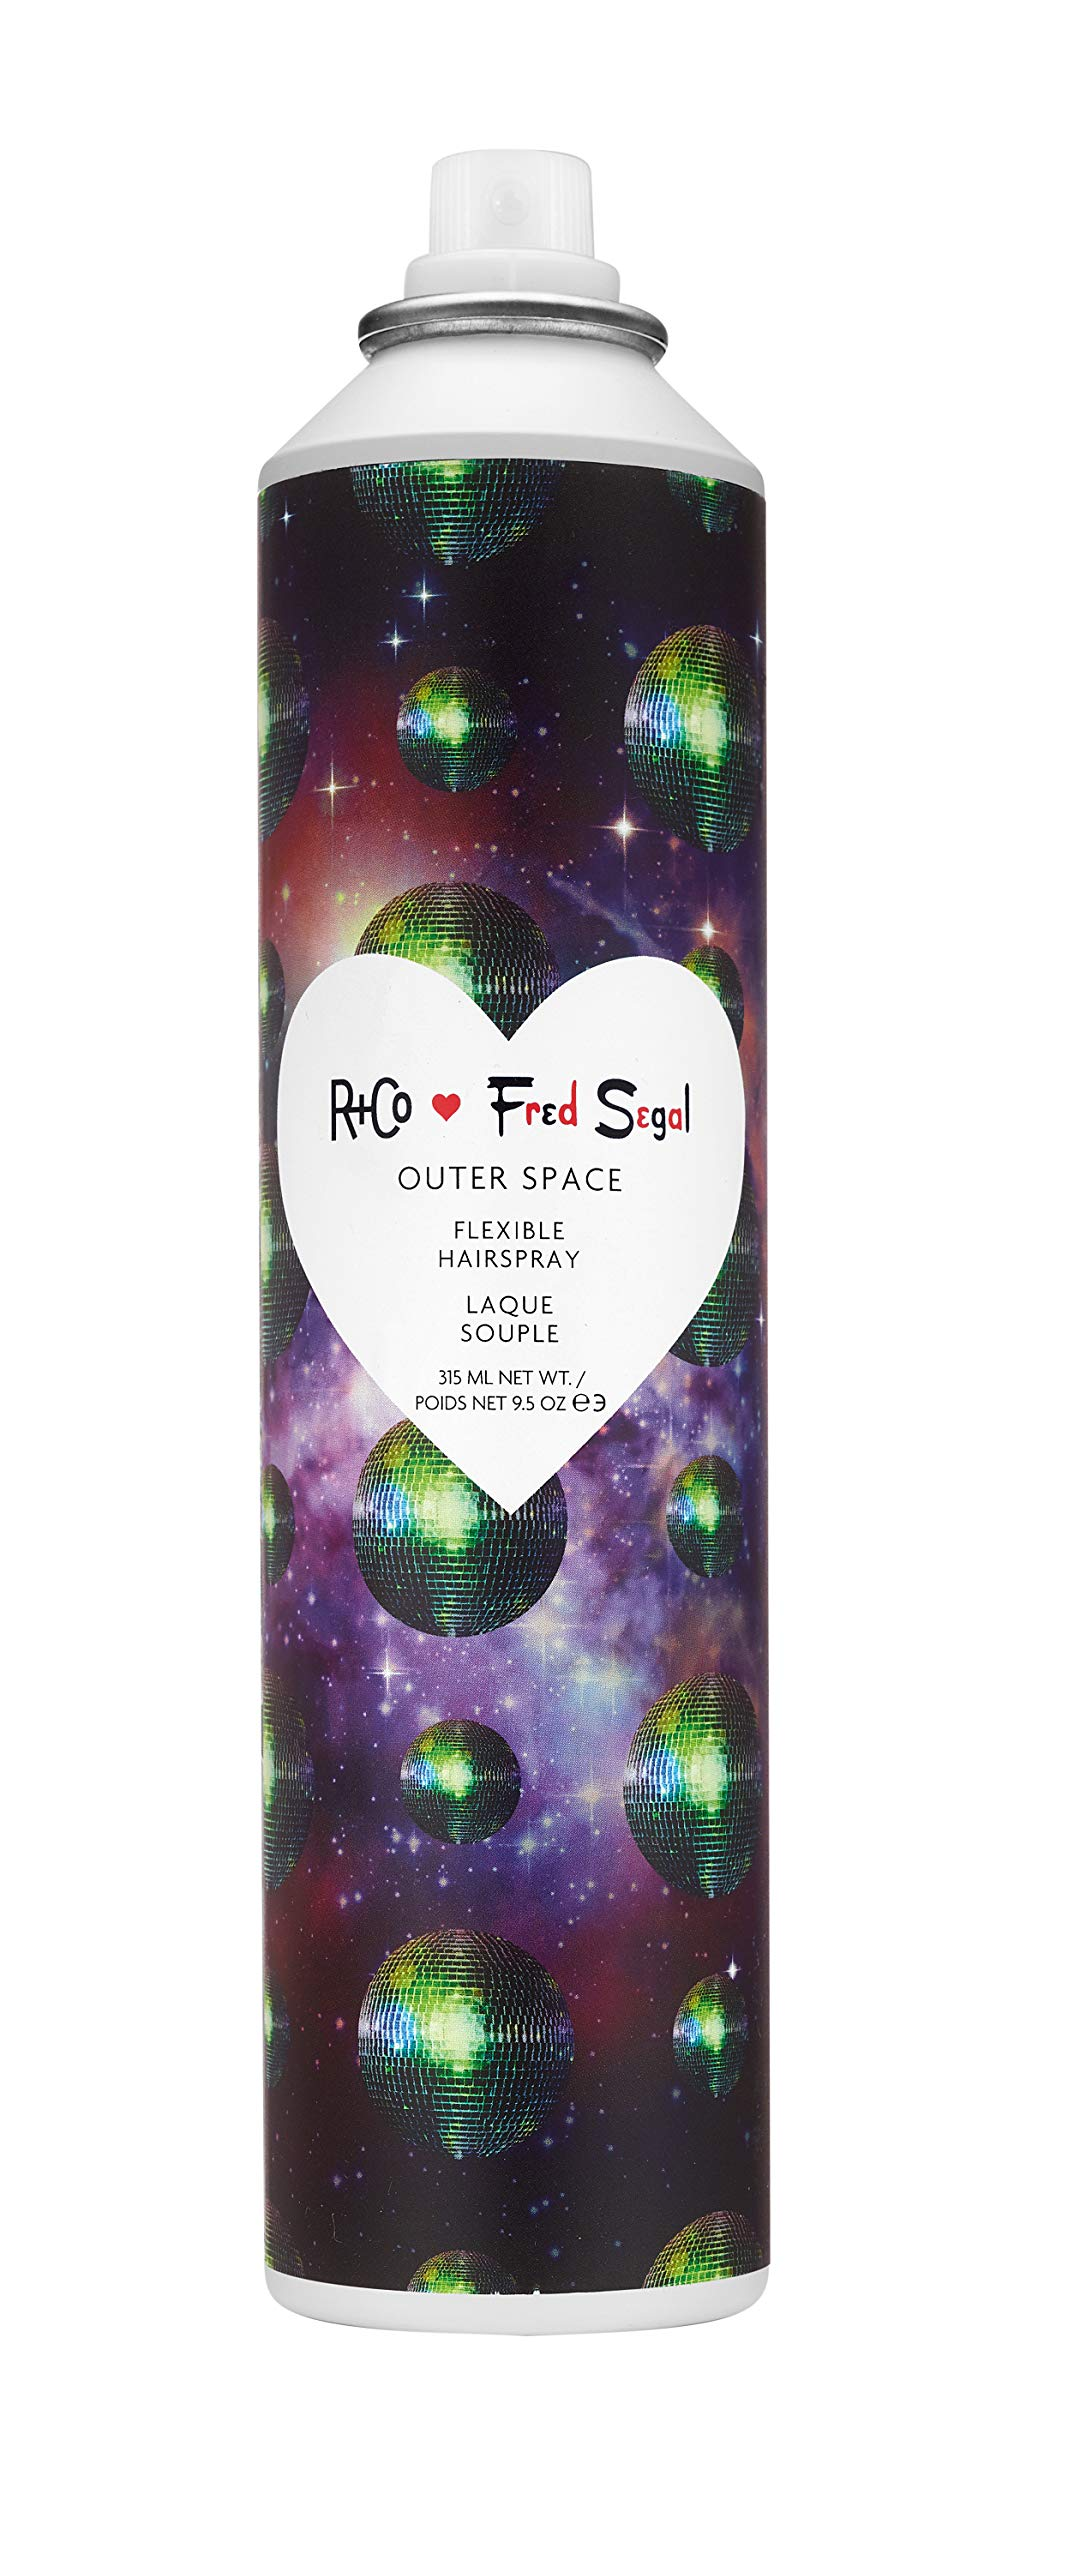 R+Co Outer Space Fred Segal Flexible Hairspray, 9.5 Oz. by R+Co